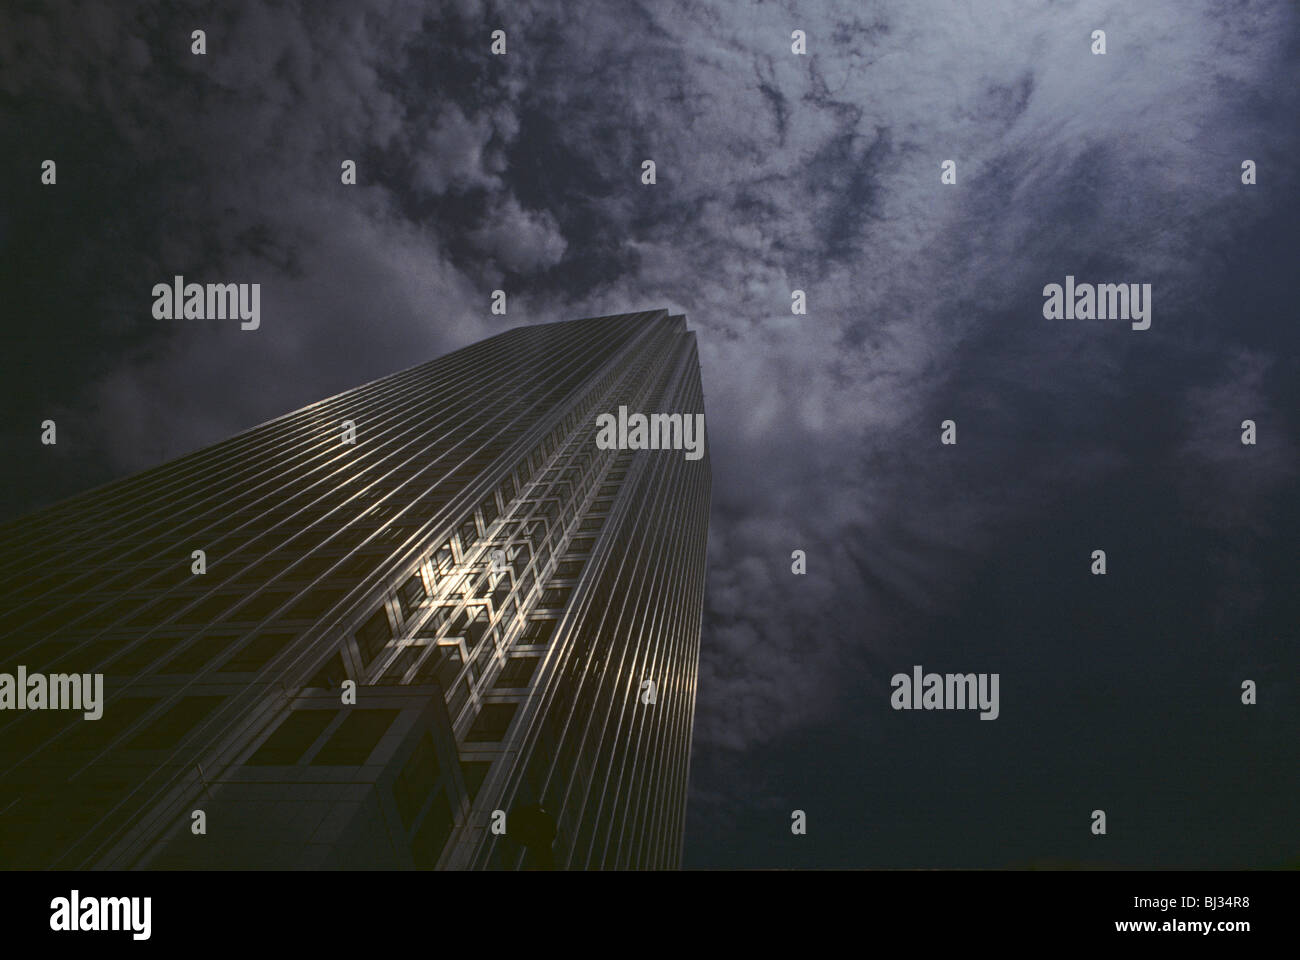 Canary Wharf tower rises to the clouds above in London Docklands, England. - Stock Image